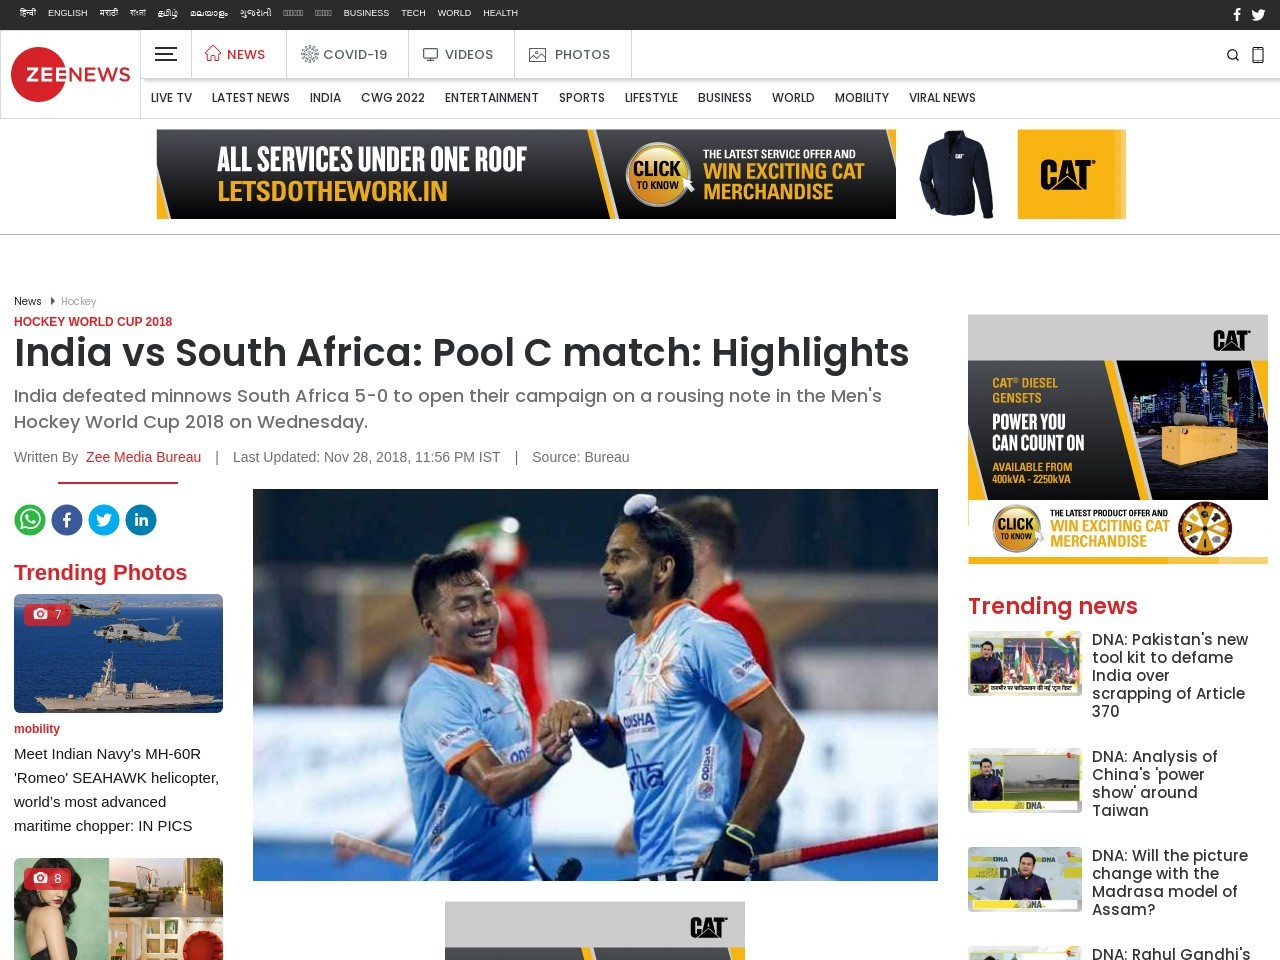 India maul South Africa 5-0 to start their Hockey World Cup 2018 campaign